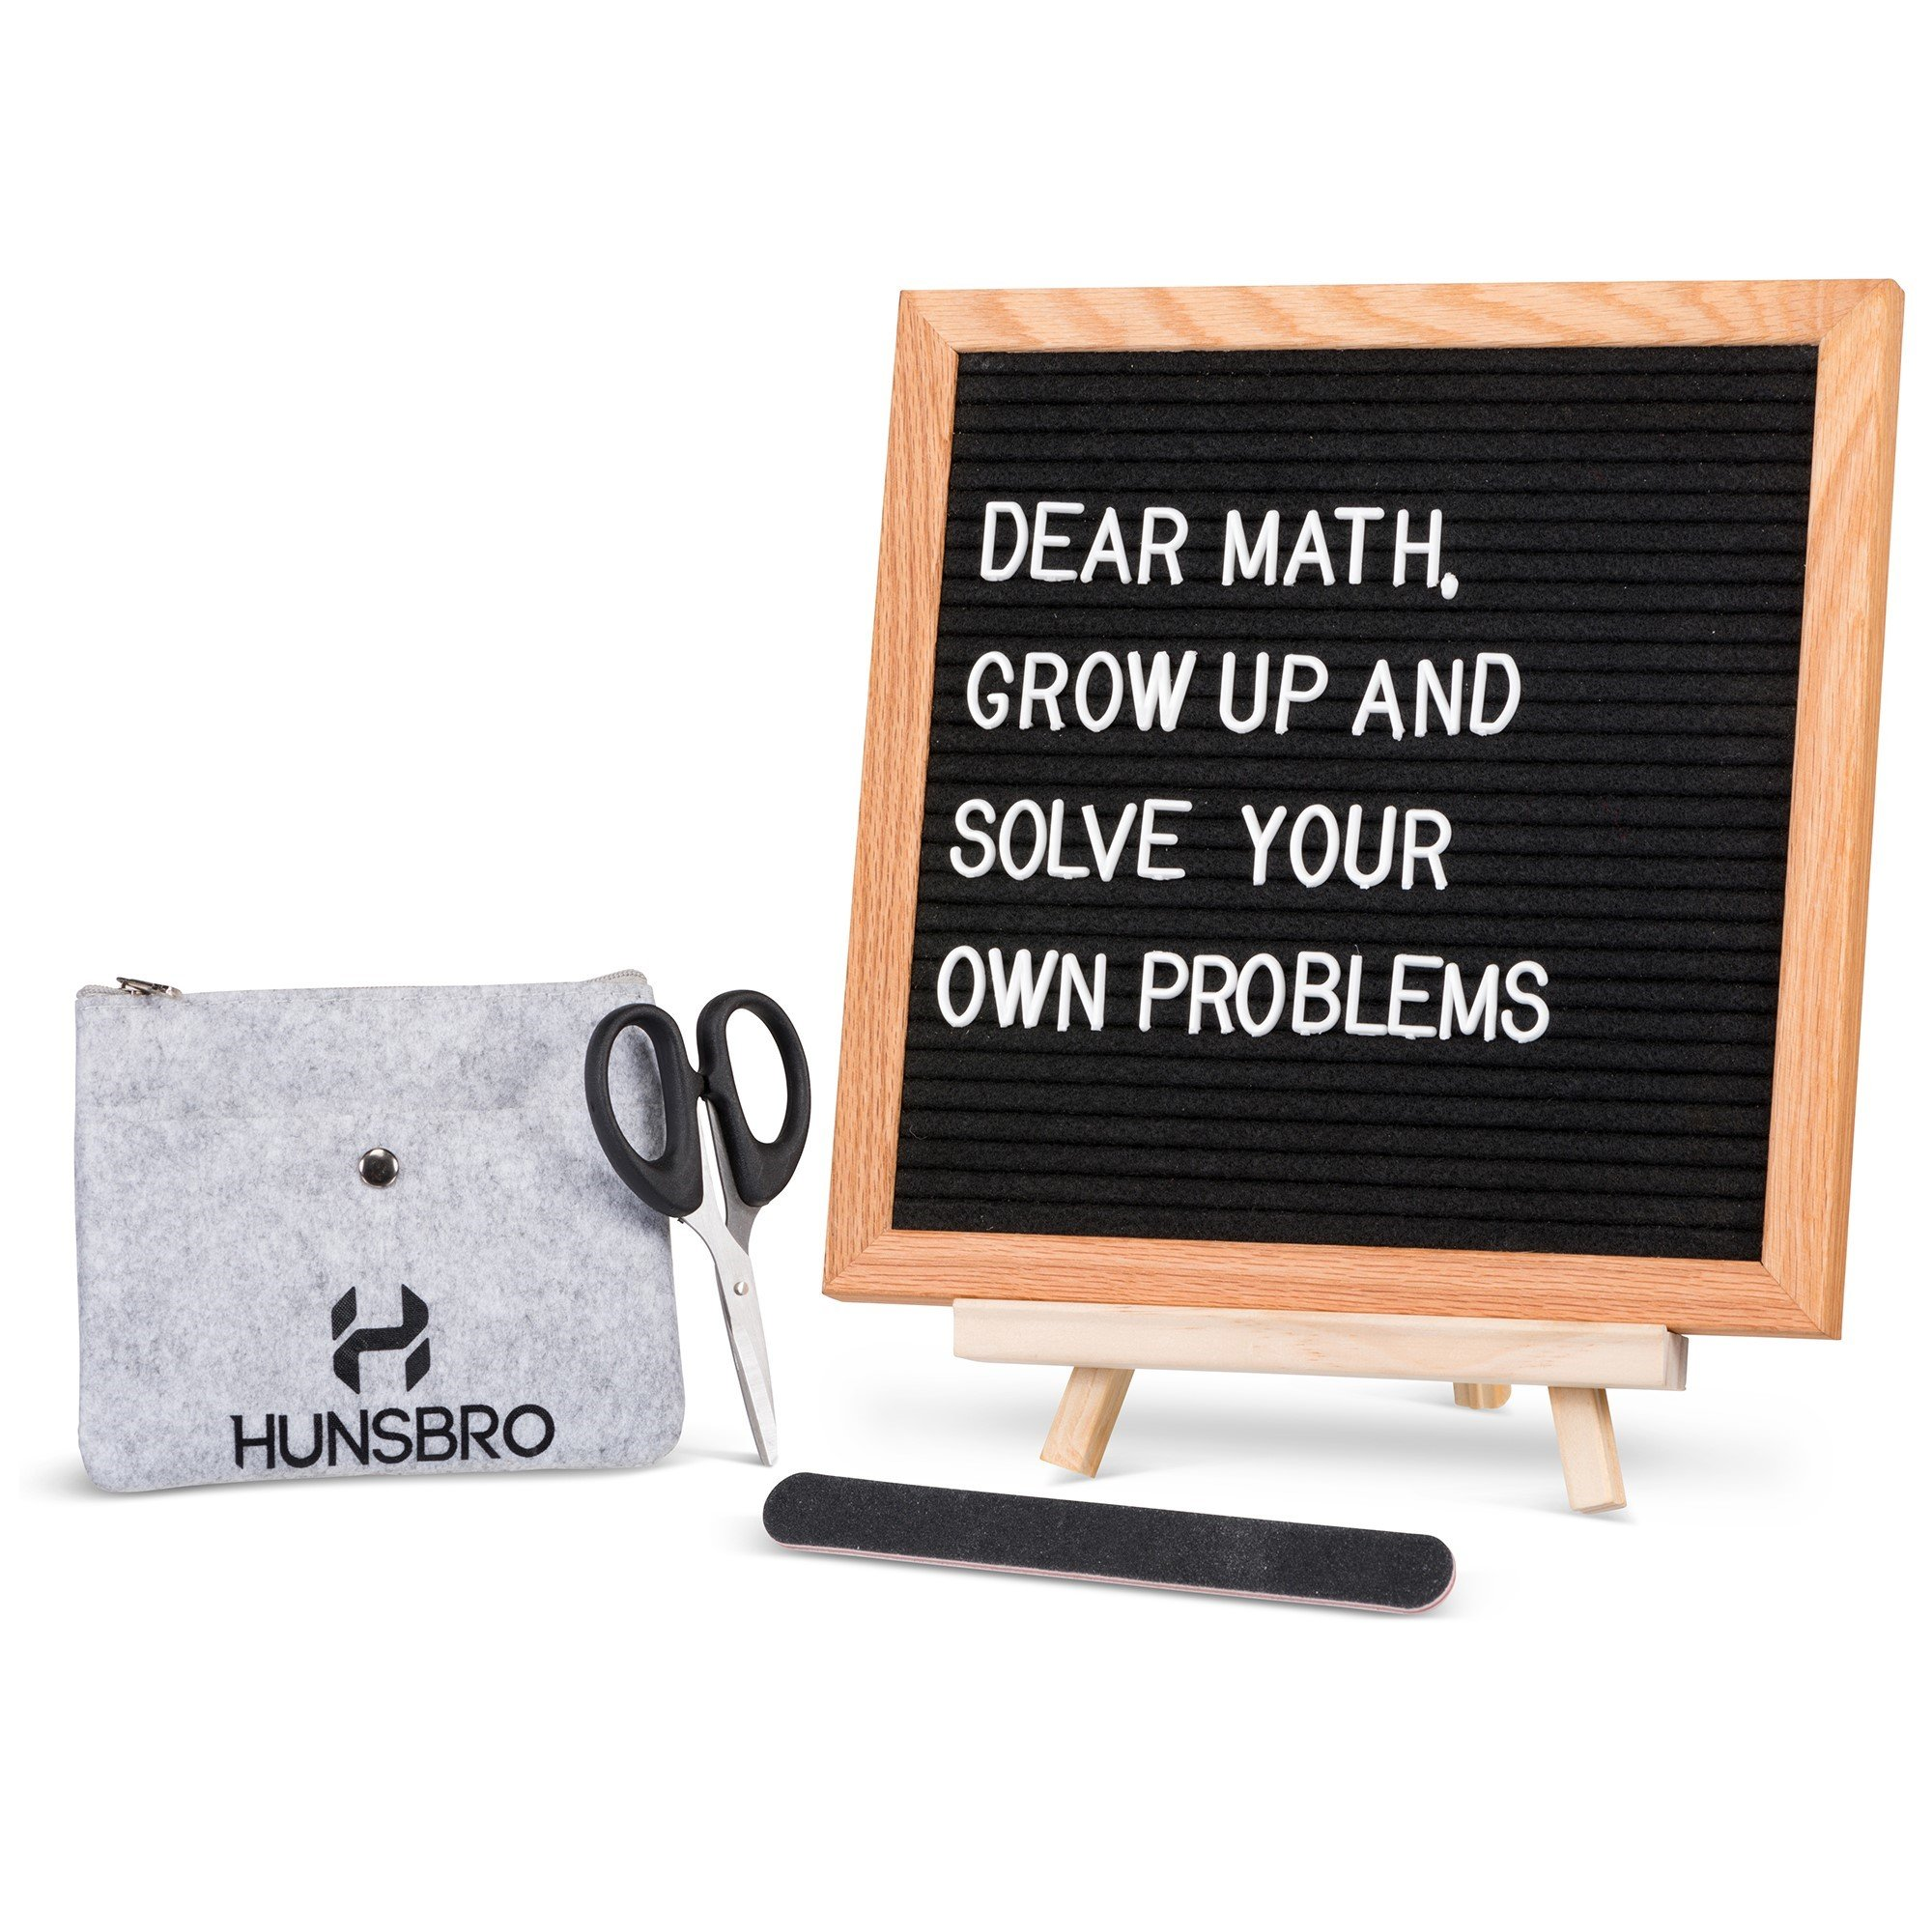 Felt Changeable Letter Board 10''X10'' with Stand Superior Felt Board in Beautiful Oiled Oak Frame - 362 White Letters Numbers and Special Characters with Emojis - Bonus Character Pouch and Wood Stand